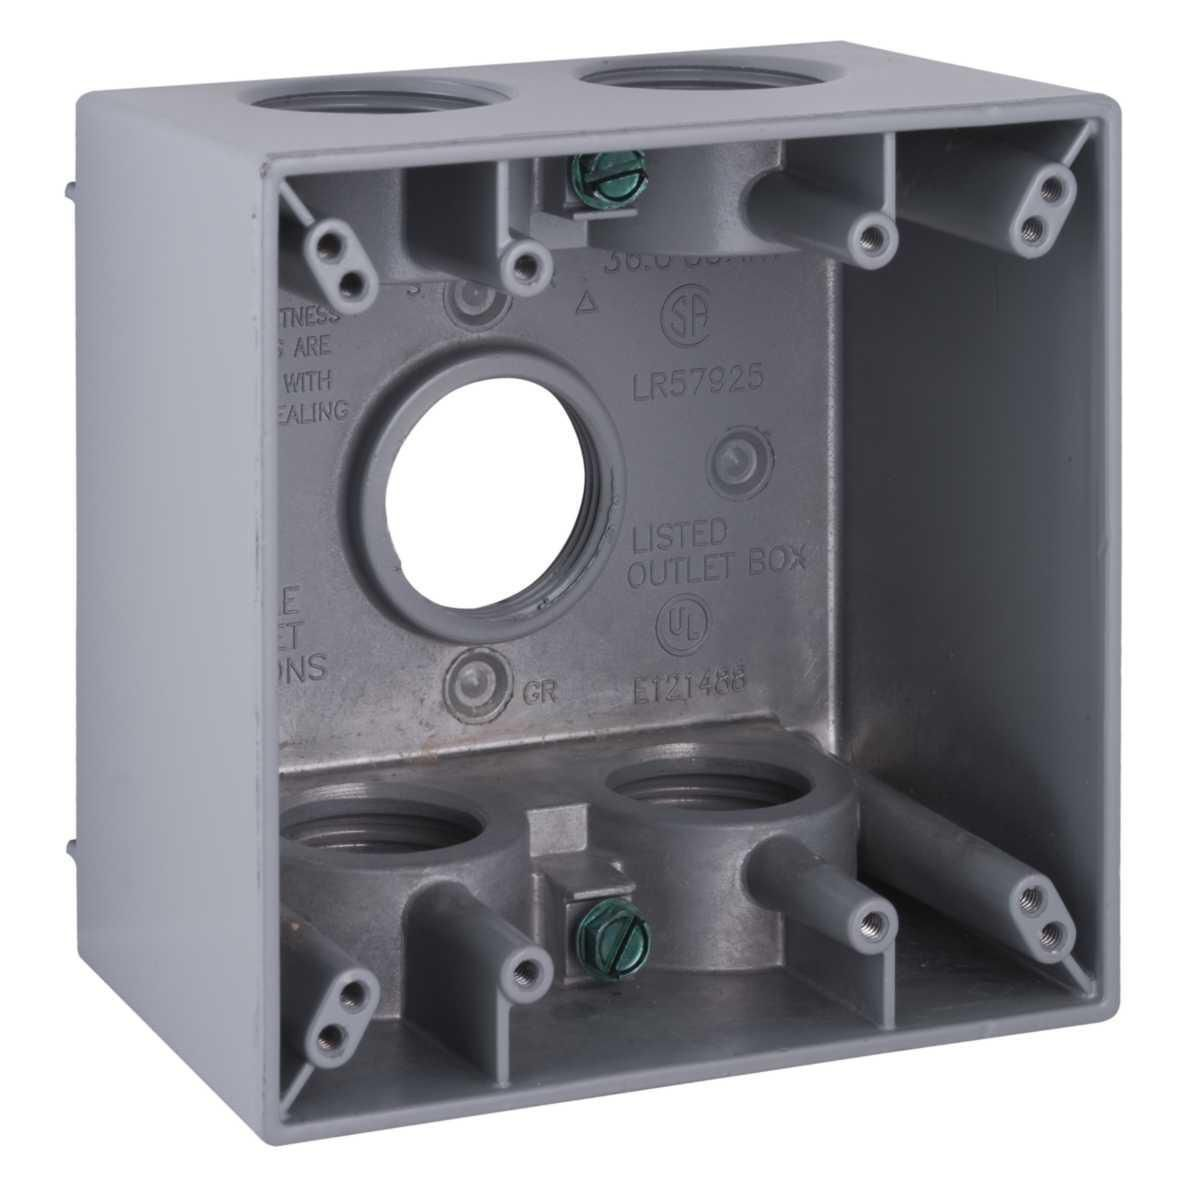 2G WP DEEP BOX (5) 1 IN. OUTLETS - GRY